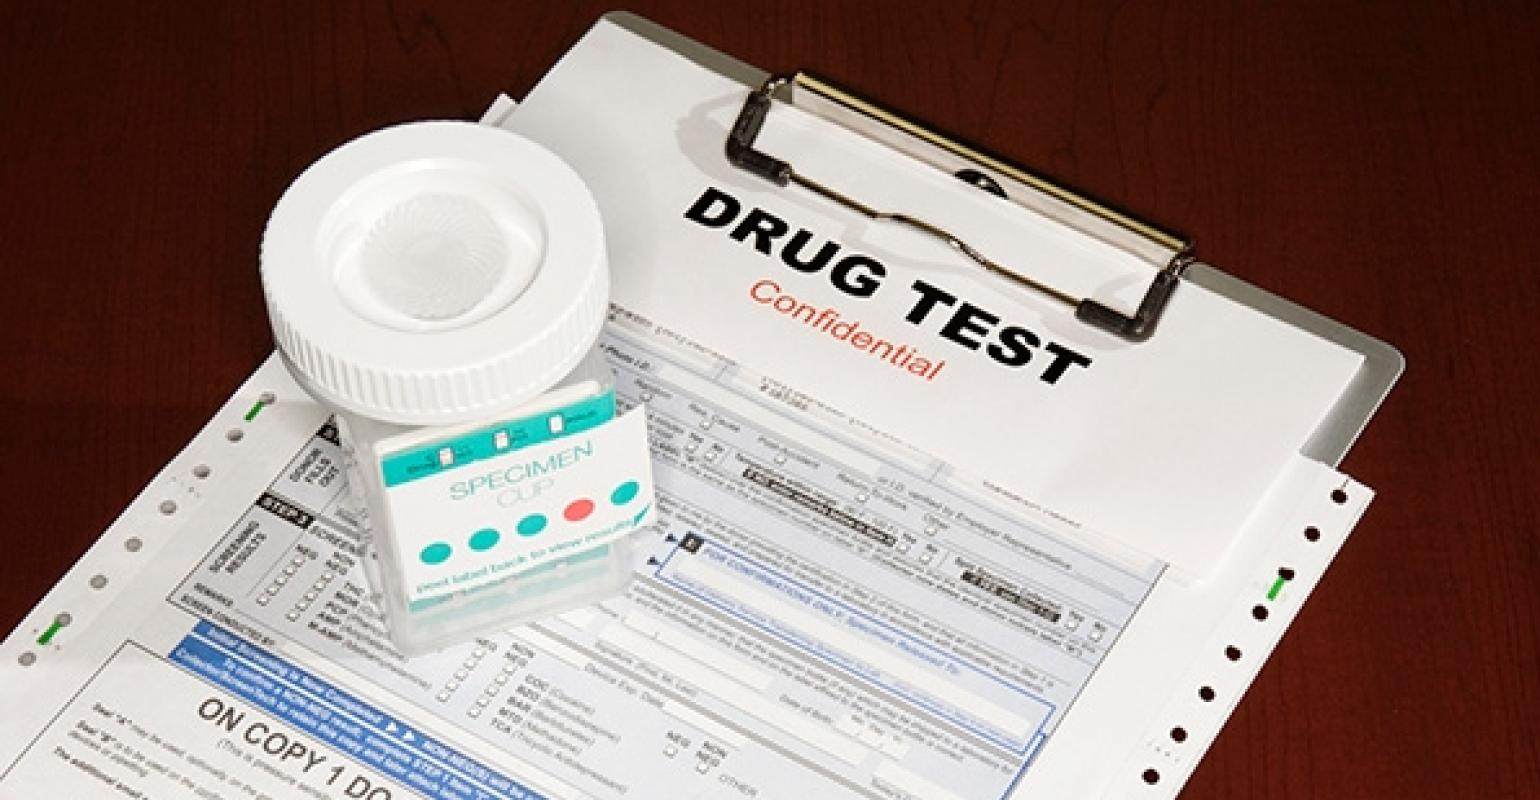 drug-test image